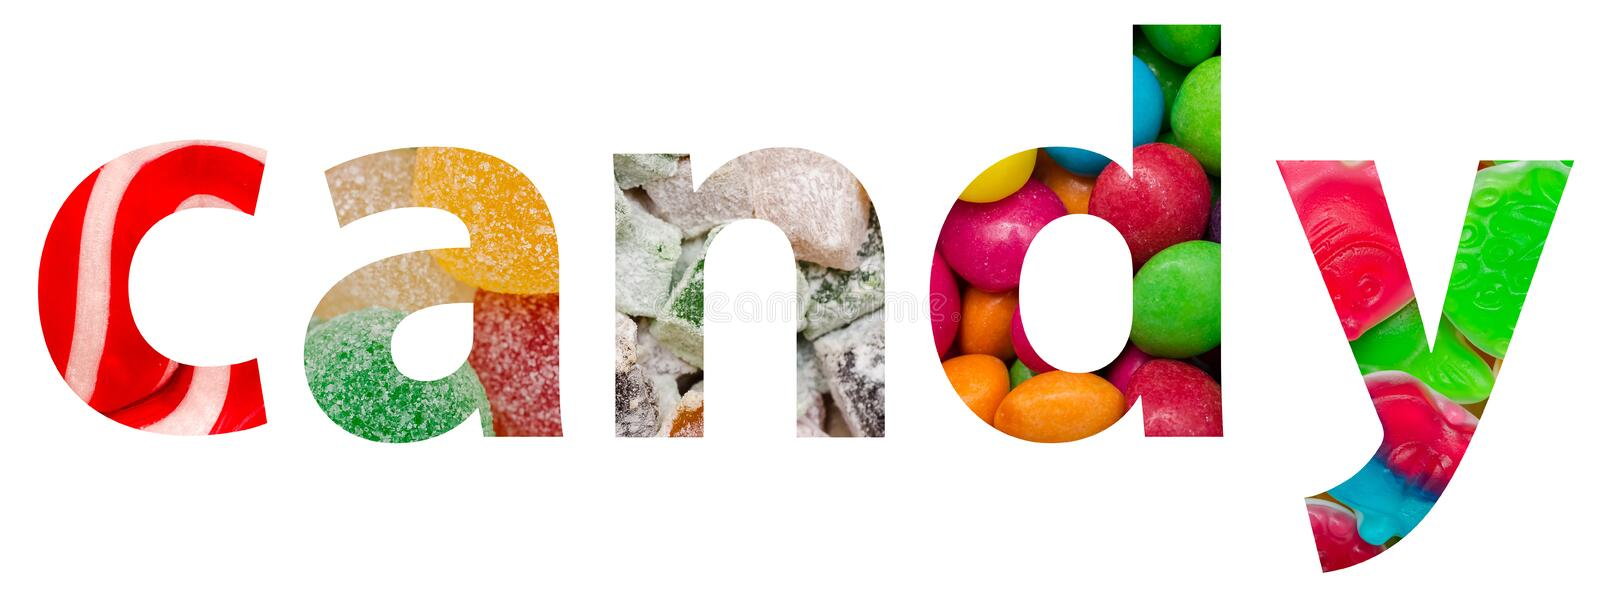 Candy Word Made Of Colorful Delicious Sweets royalty free stock images